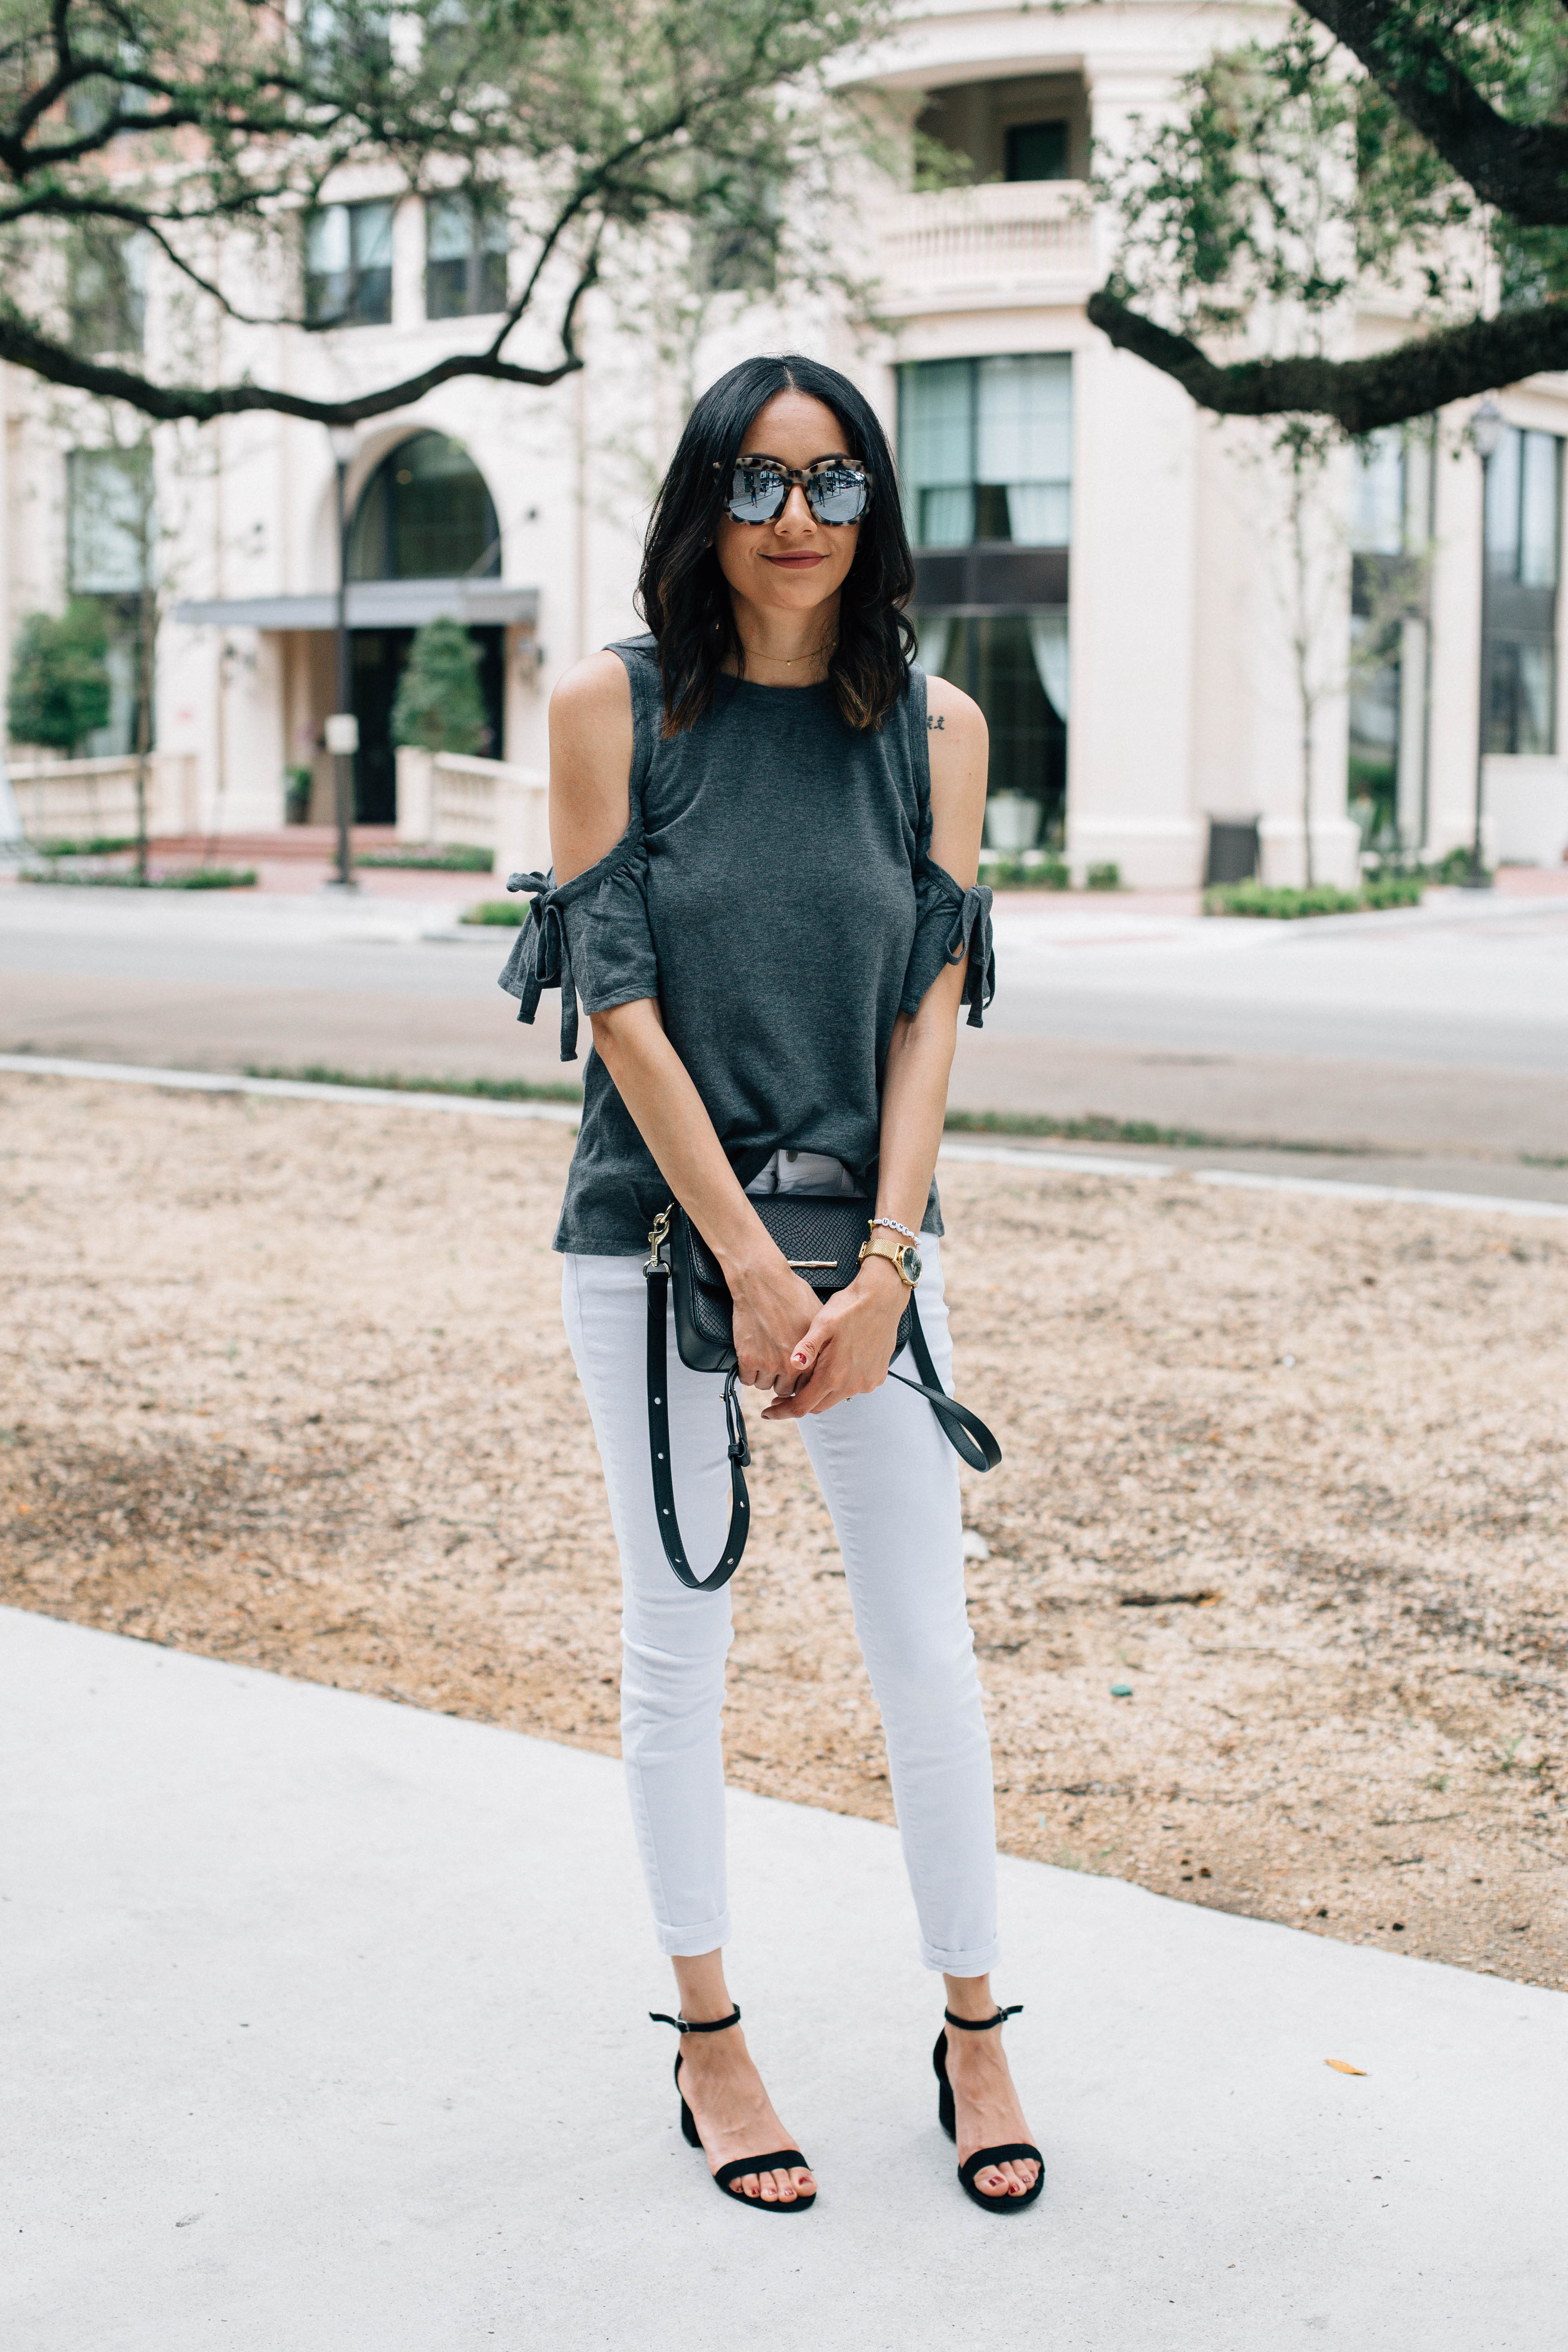 Lifestyle blogger Lilly Beltran of Daily Craving in a casual look in a grey cold shoulder top & white skinny jeans